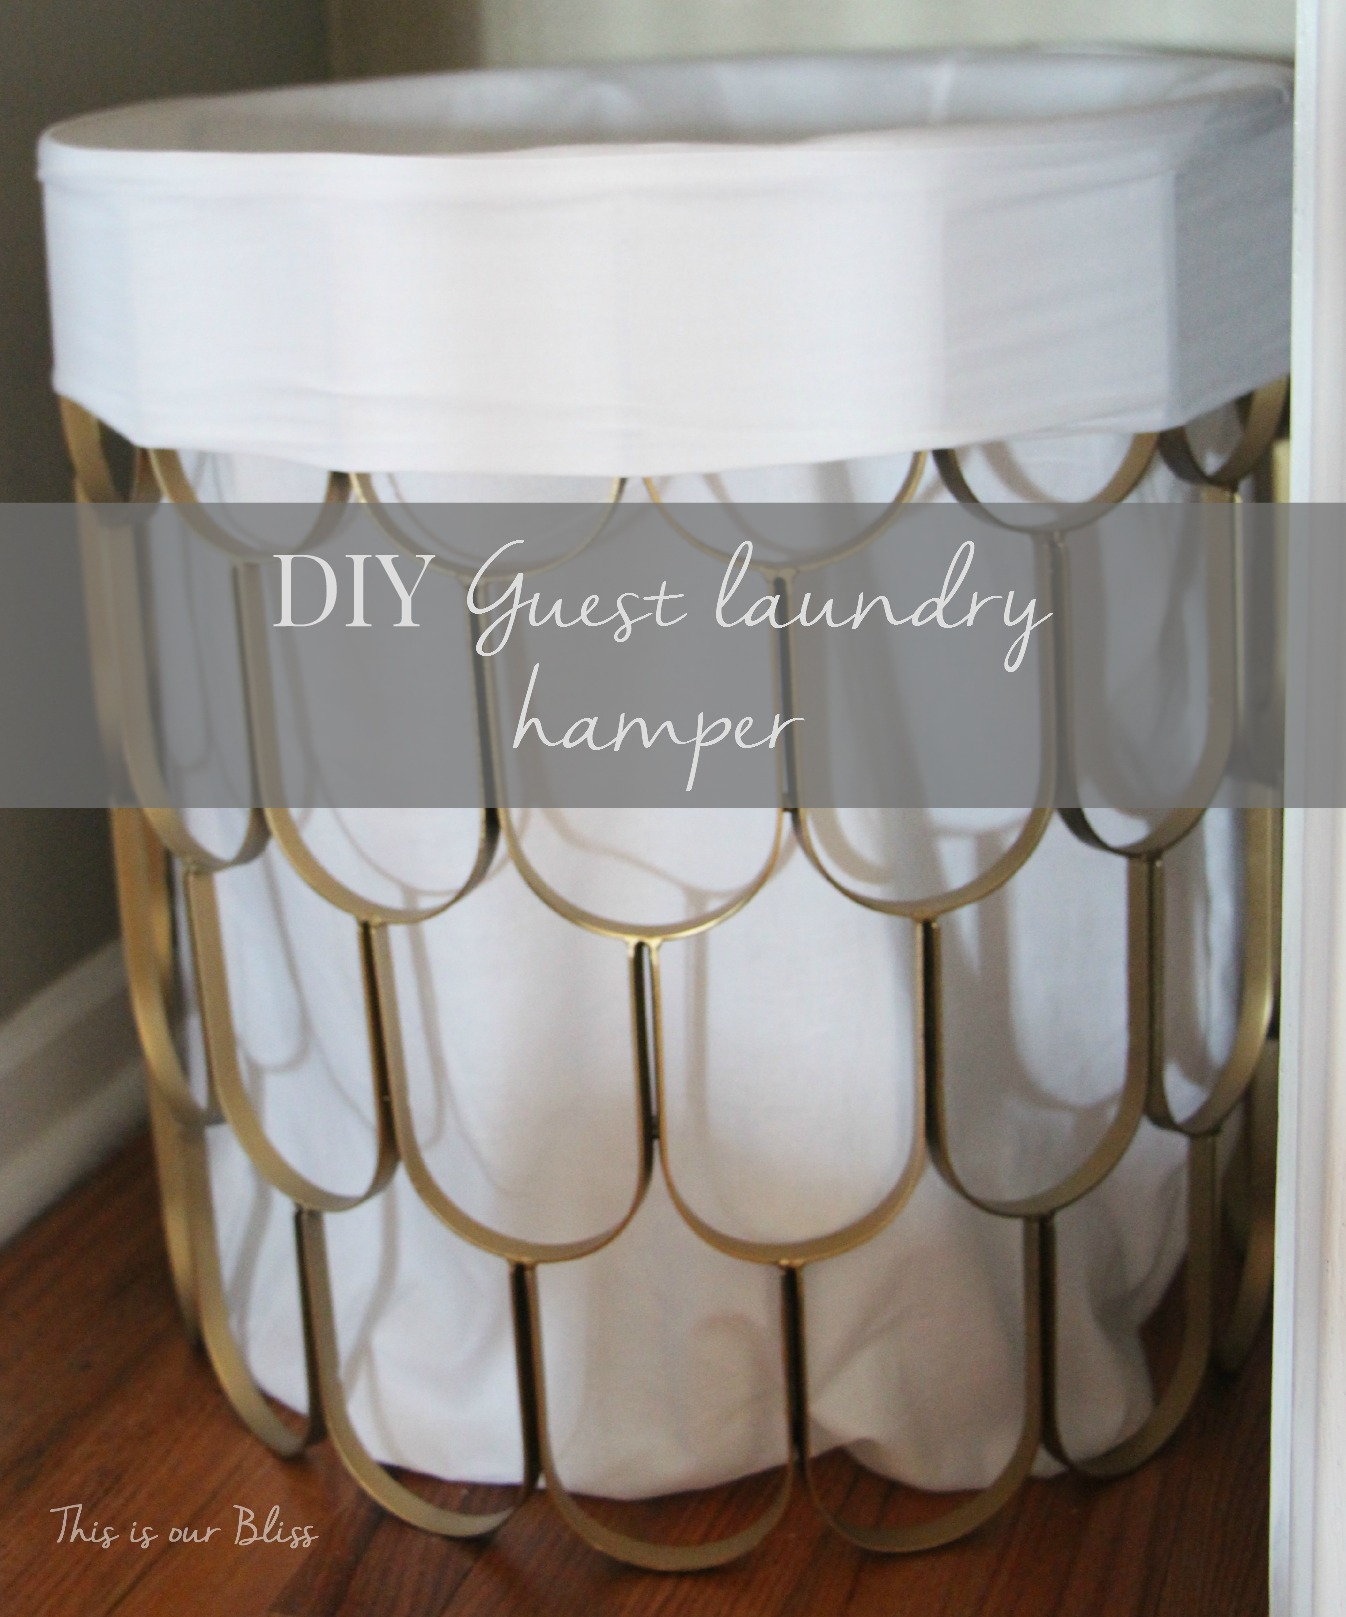 Art Deco Bathroom Ideas Great Find Quick Fix 2 Diy Hamper This Is Our Bliss